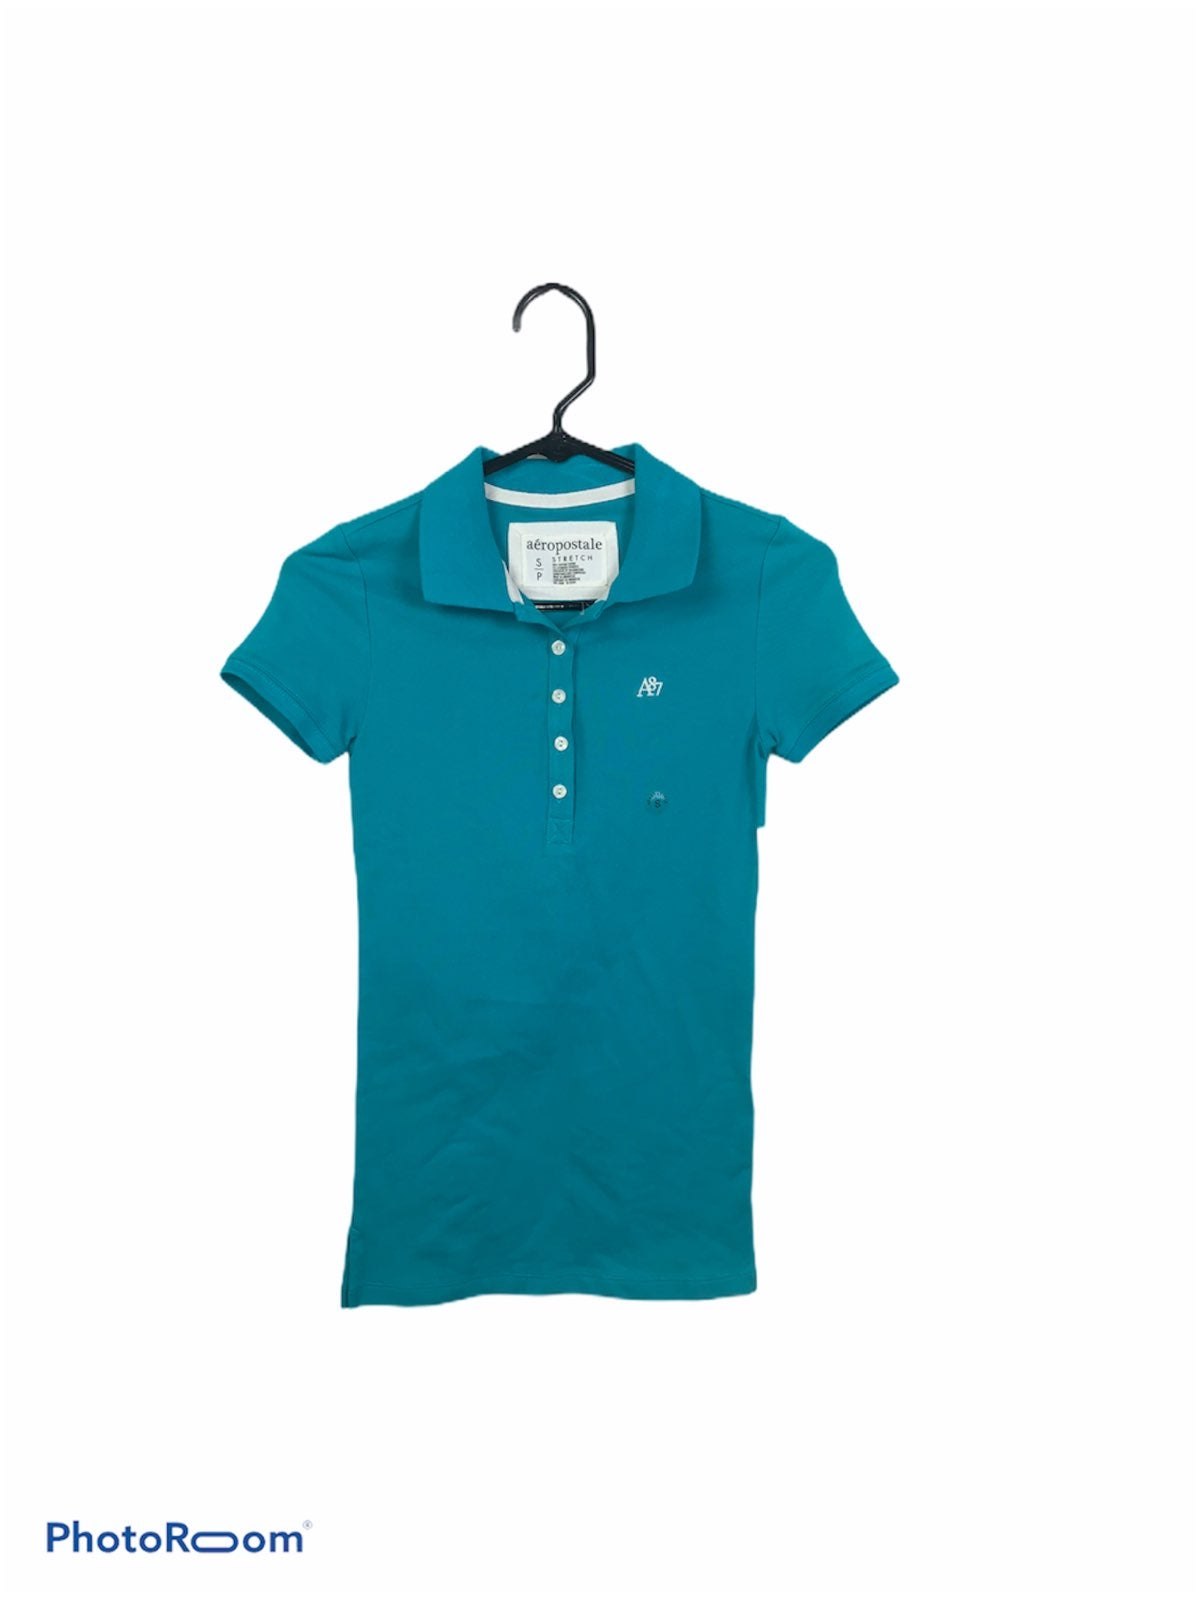 Small Aeropostale polo shirt NWT